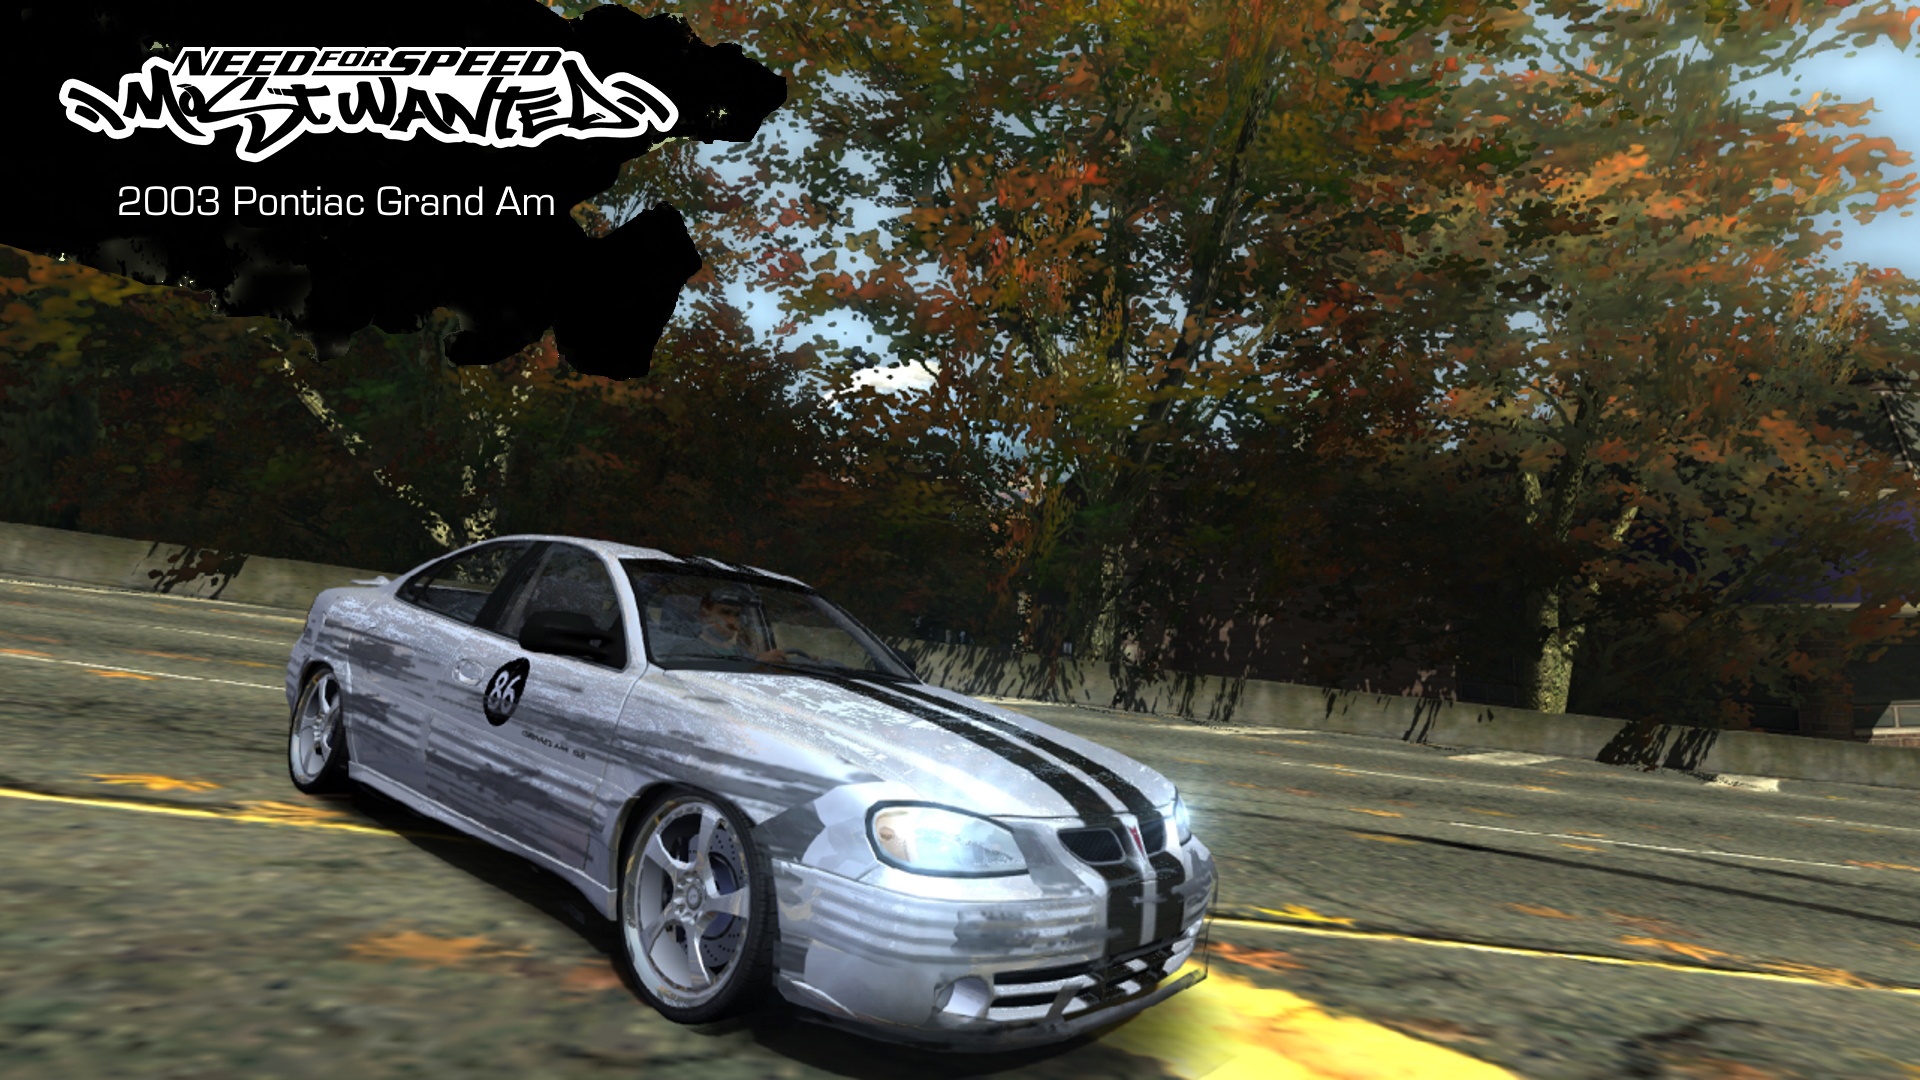 Nfsmods Need For Speed Most Wanted 2003 Pontiac Grand Am Add On